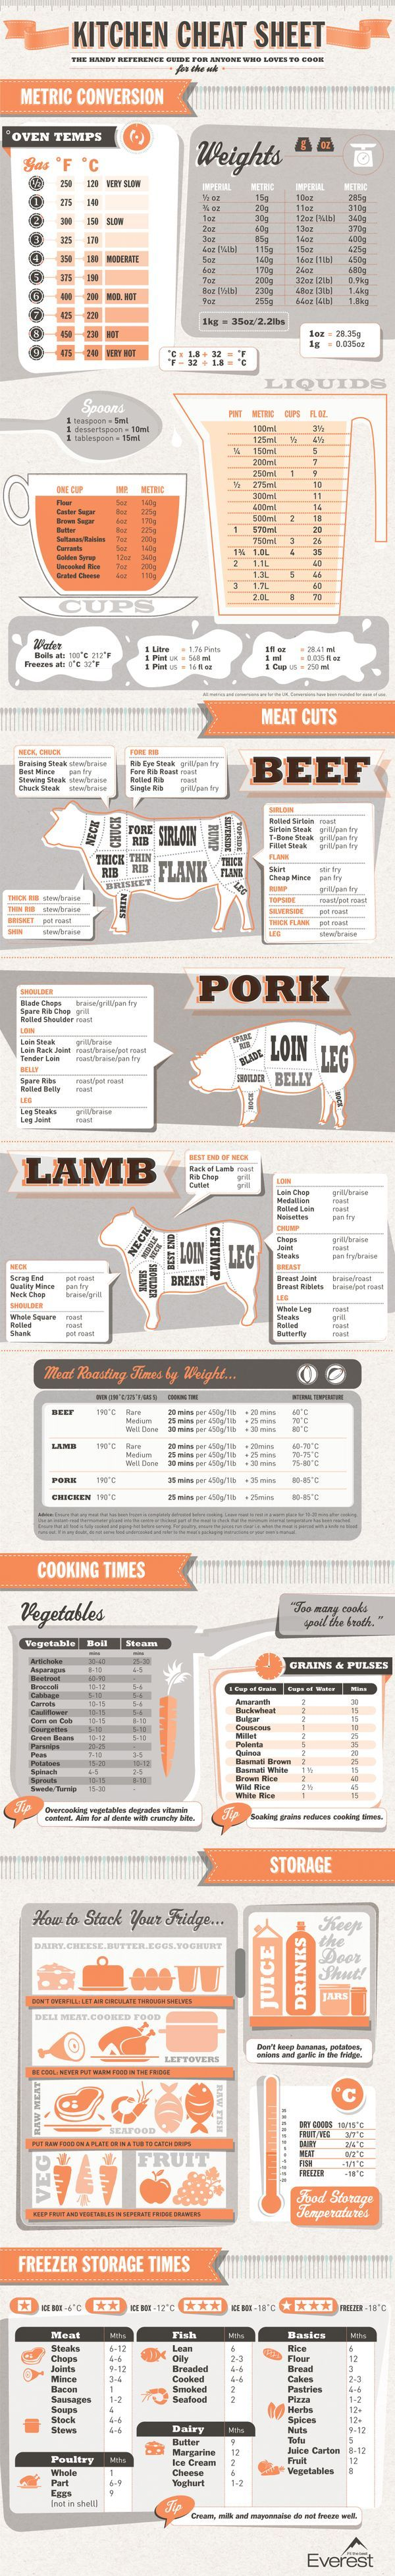 Kitchen Cheat Sheet for Conversions and other handy info